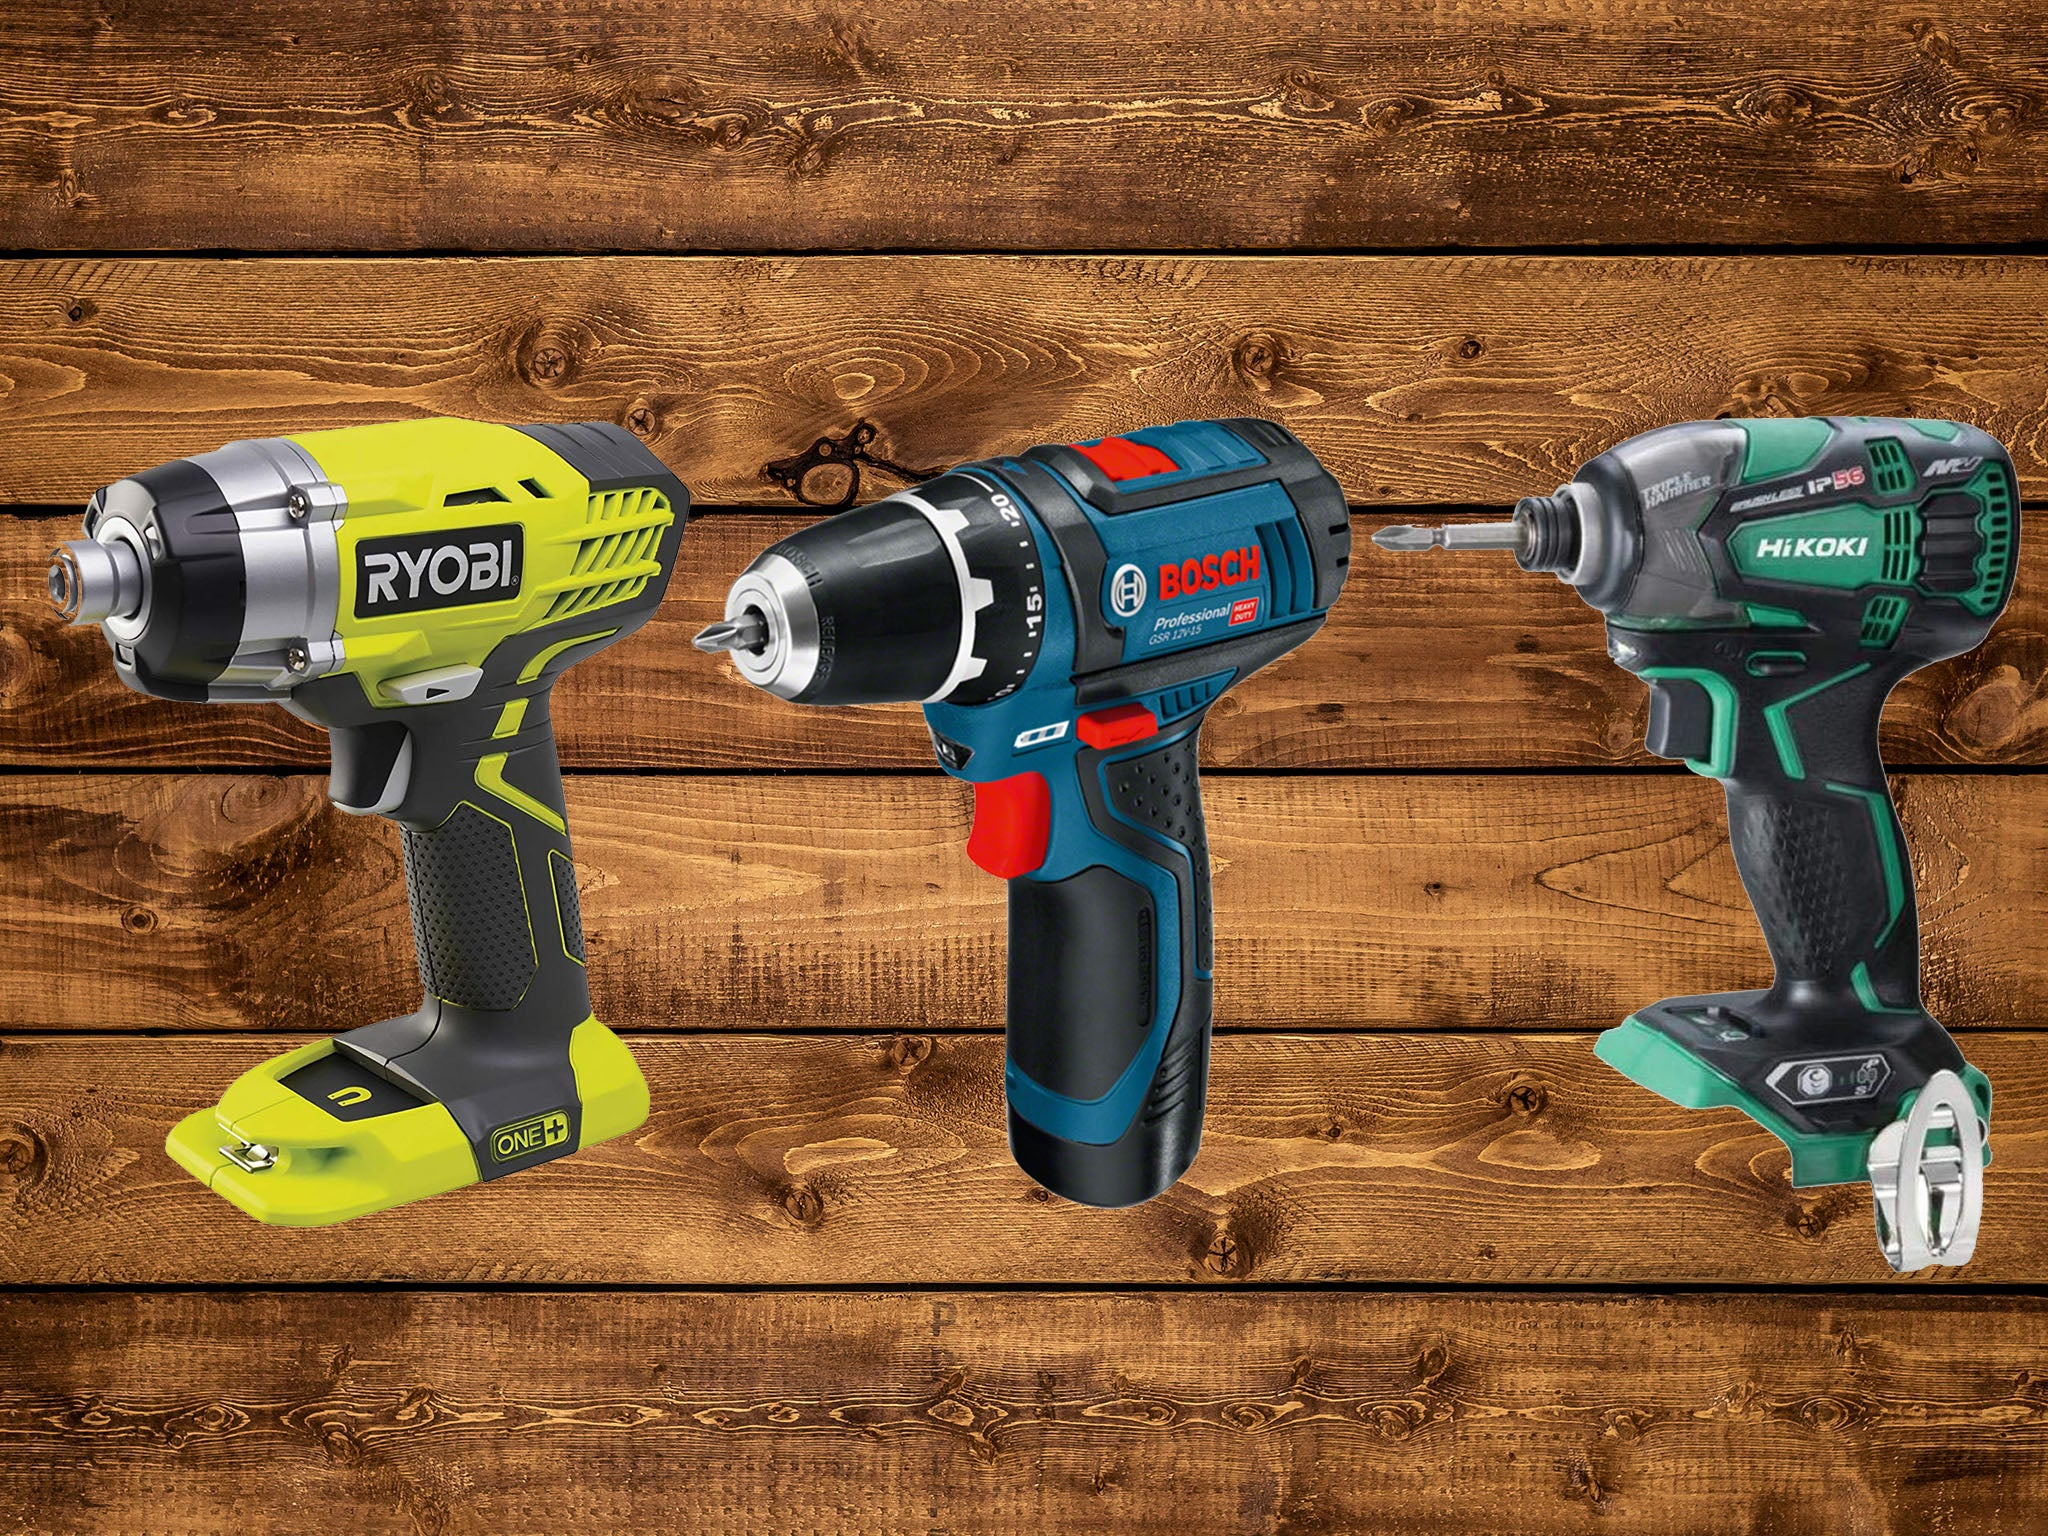 Best Cordless Drills And Drivers For Home Use The Independent